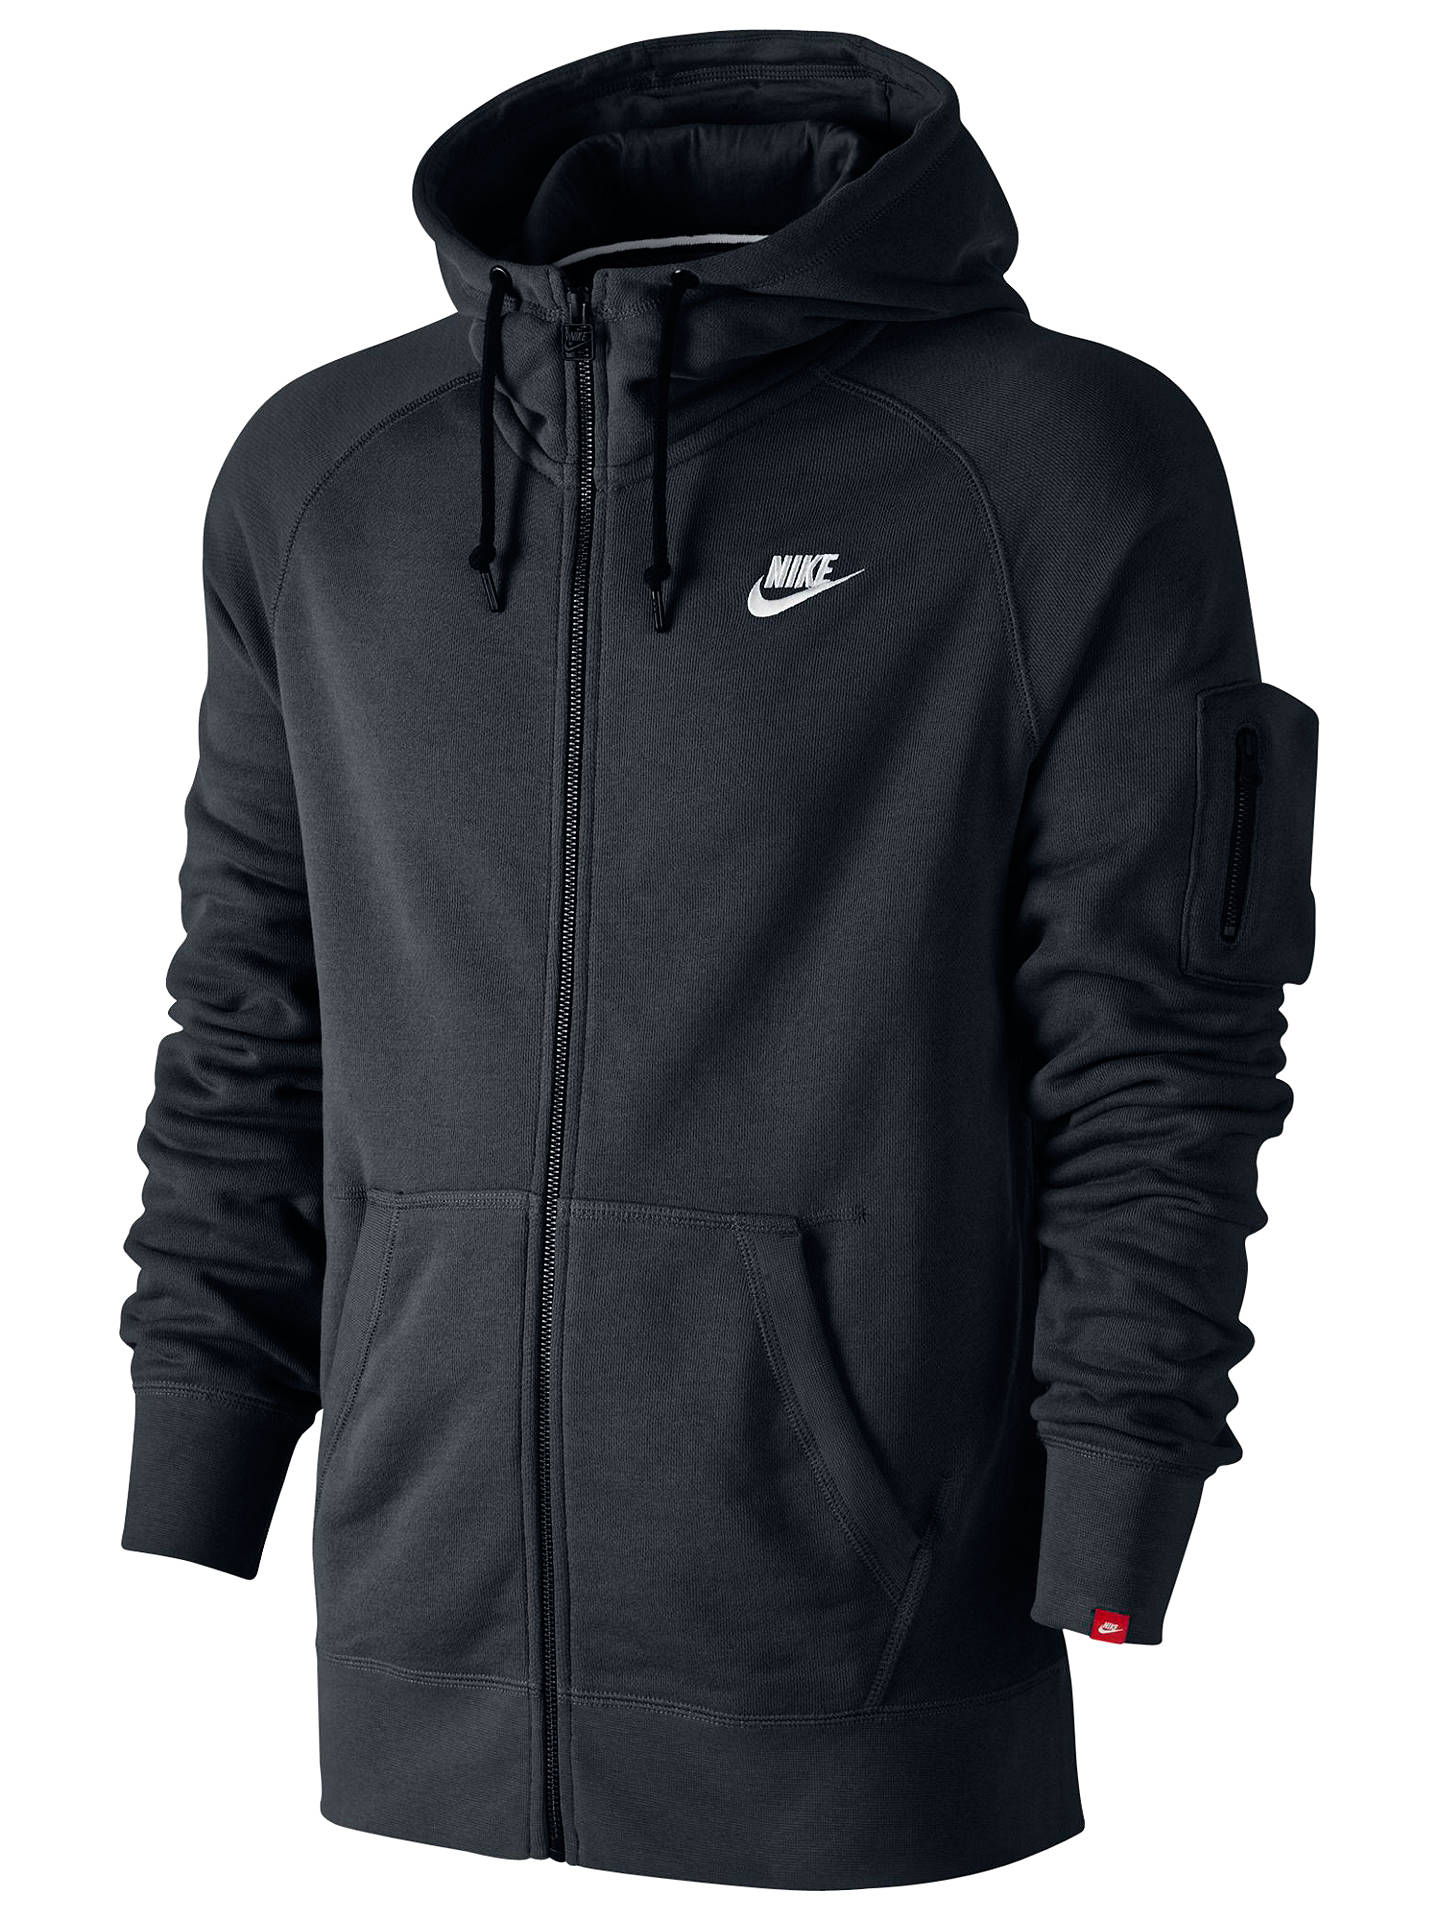 stable quality cheap sale new list Nike AW77 Fleece Full Zip Training Hoodie at John Lewis ...